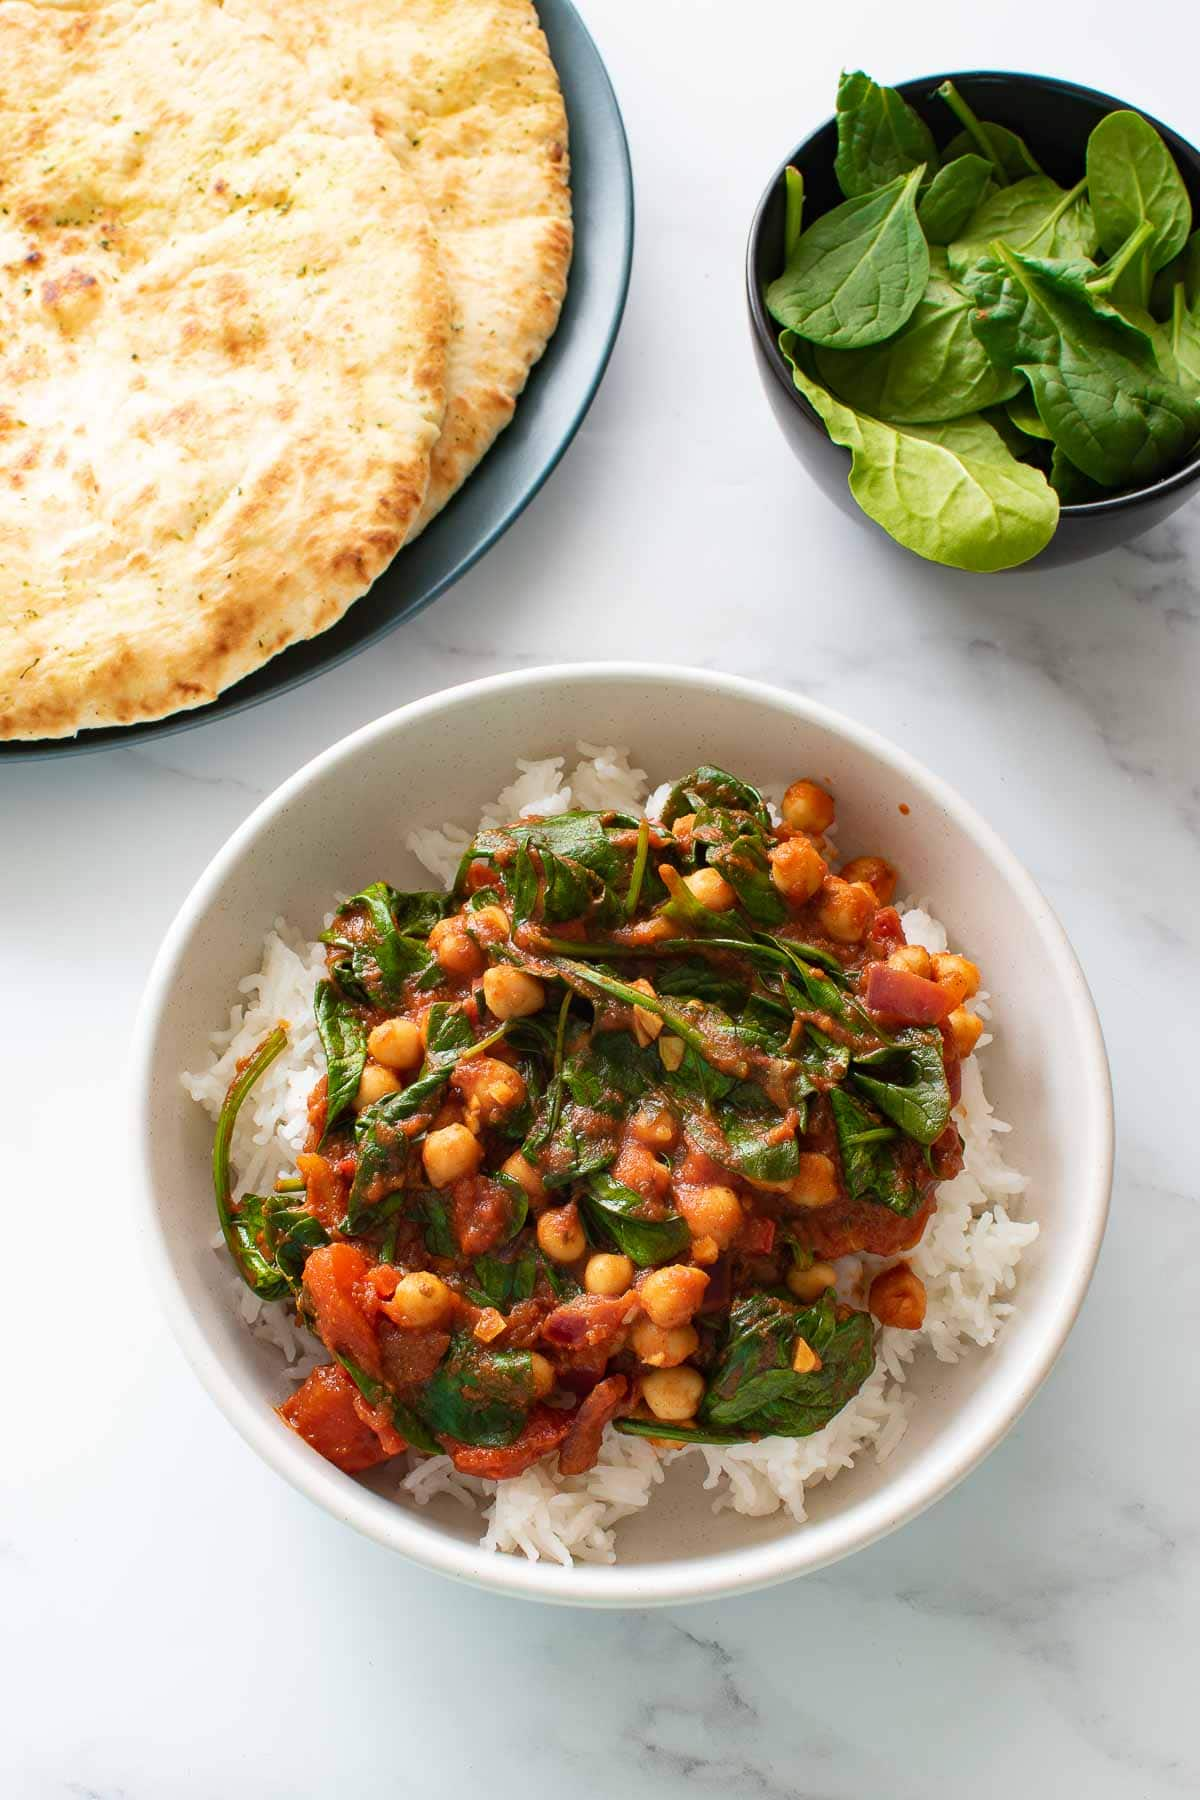 A bowl of curry with spinach and chickpeas.